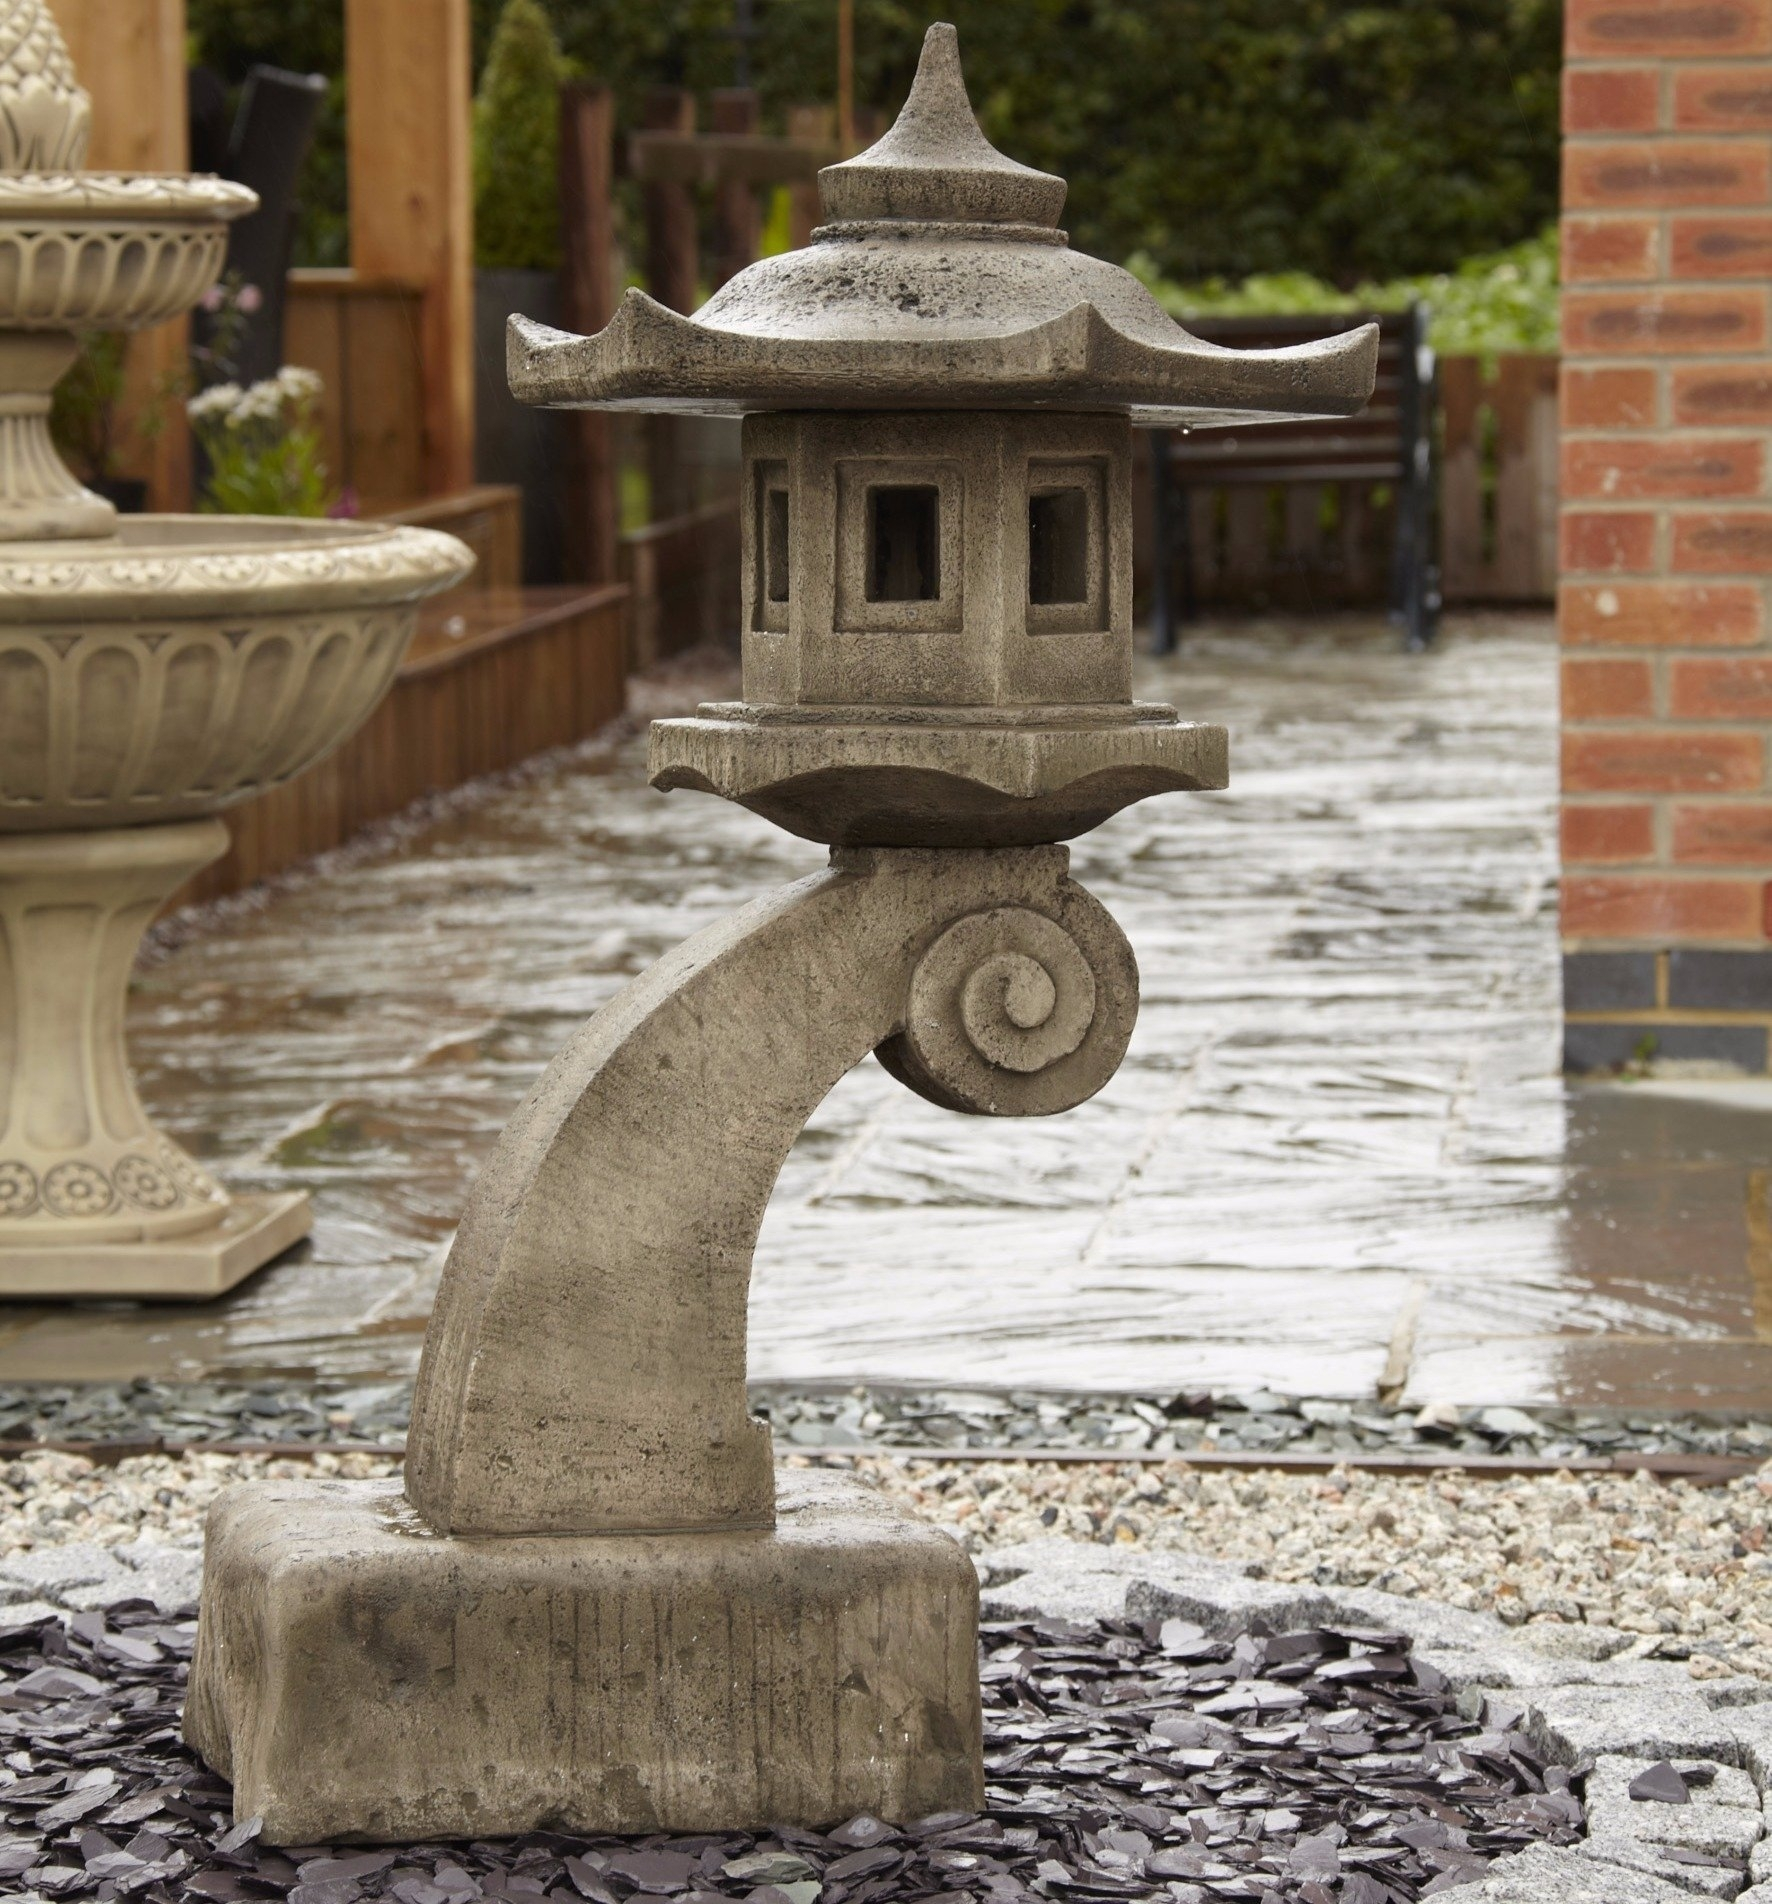 Large Curved Bali Oriental Garden Lantern - Gardensite.co.uk with Outdoor Japanese Lanterns for Sale (Image 16 of 20)